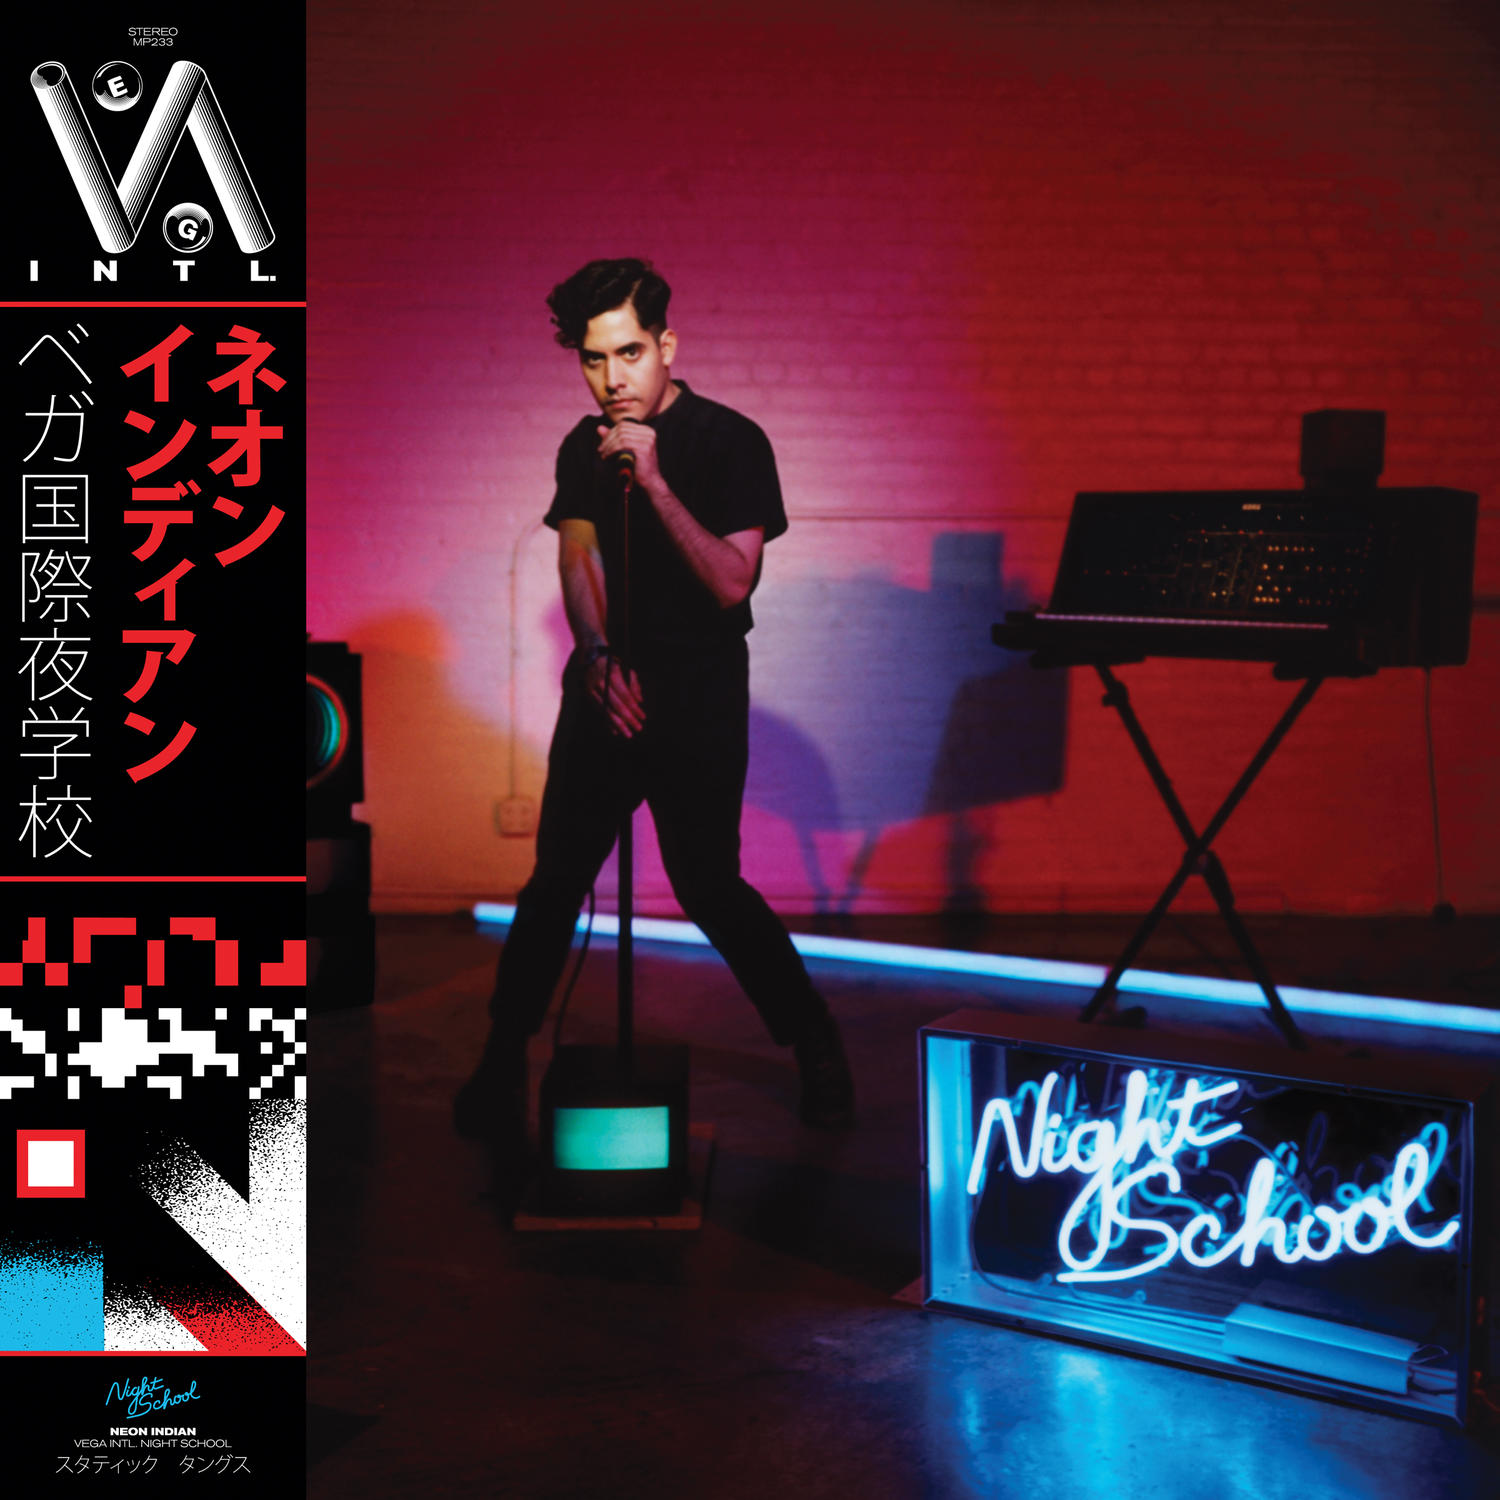 vega intl night school The Directors Chair: A Chat with Neon Indians Alan Palomo